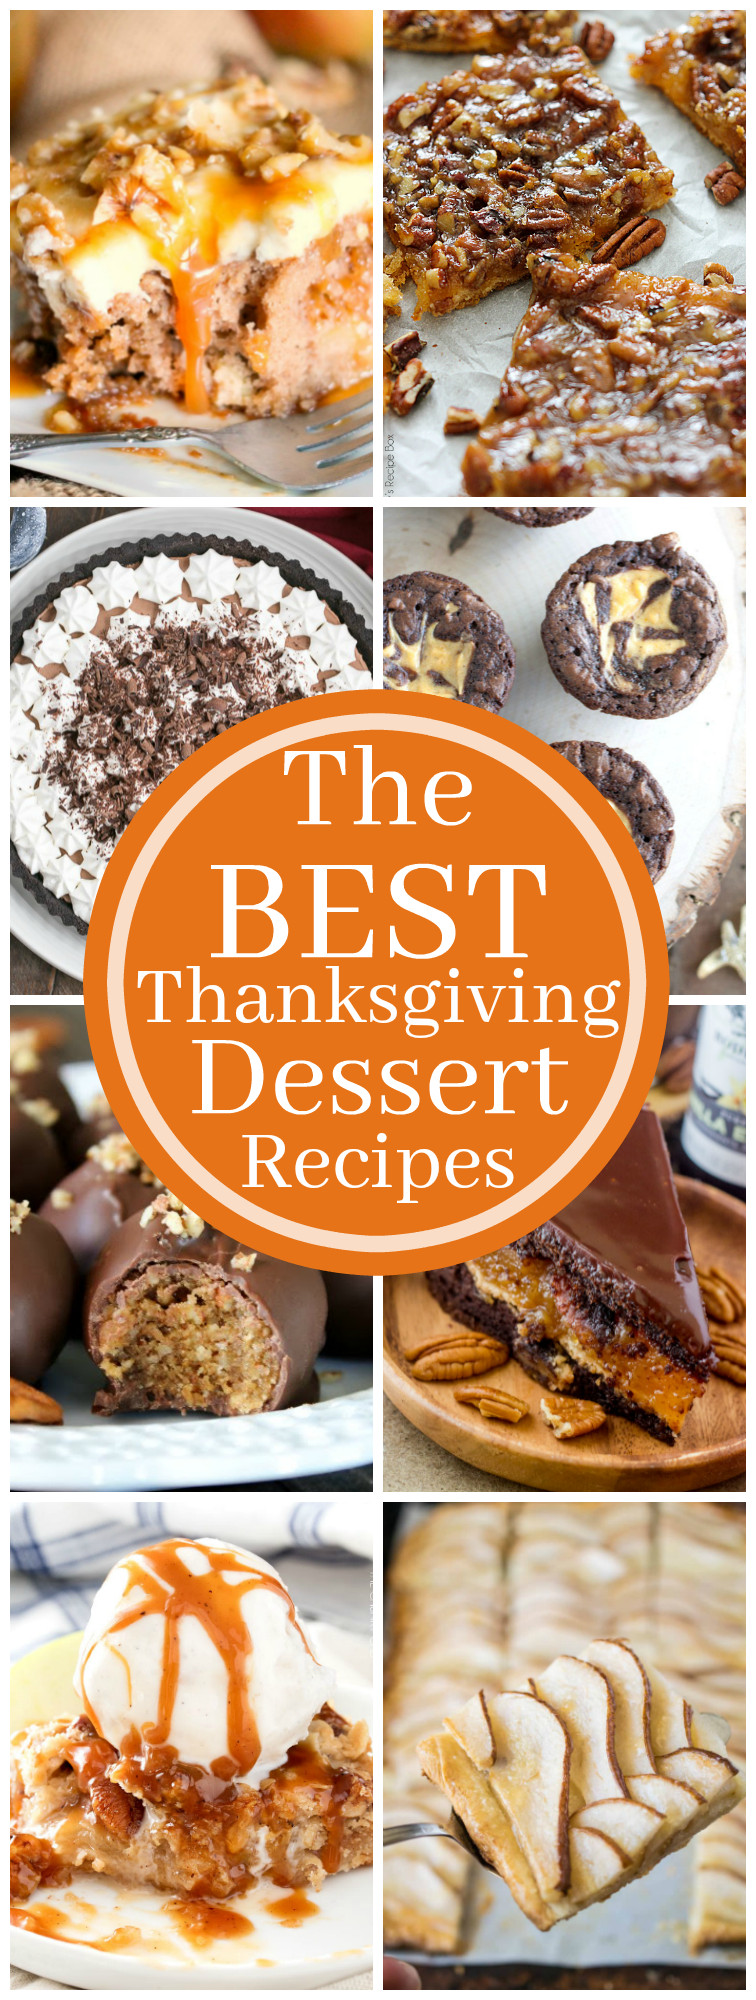 Best Pies For Thanksgiving  The Best Thanksgiving Dessert Recipes The Chunky Chef